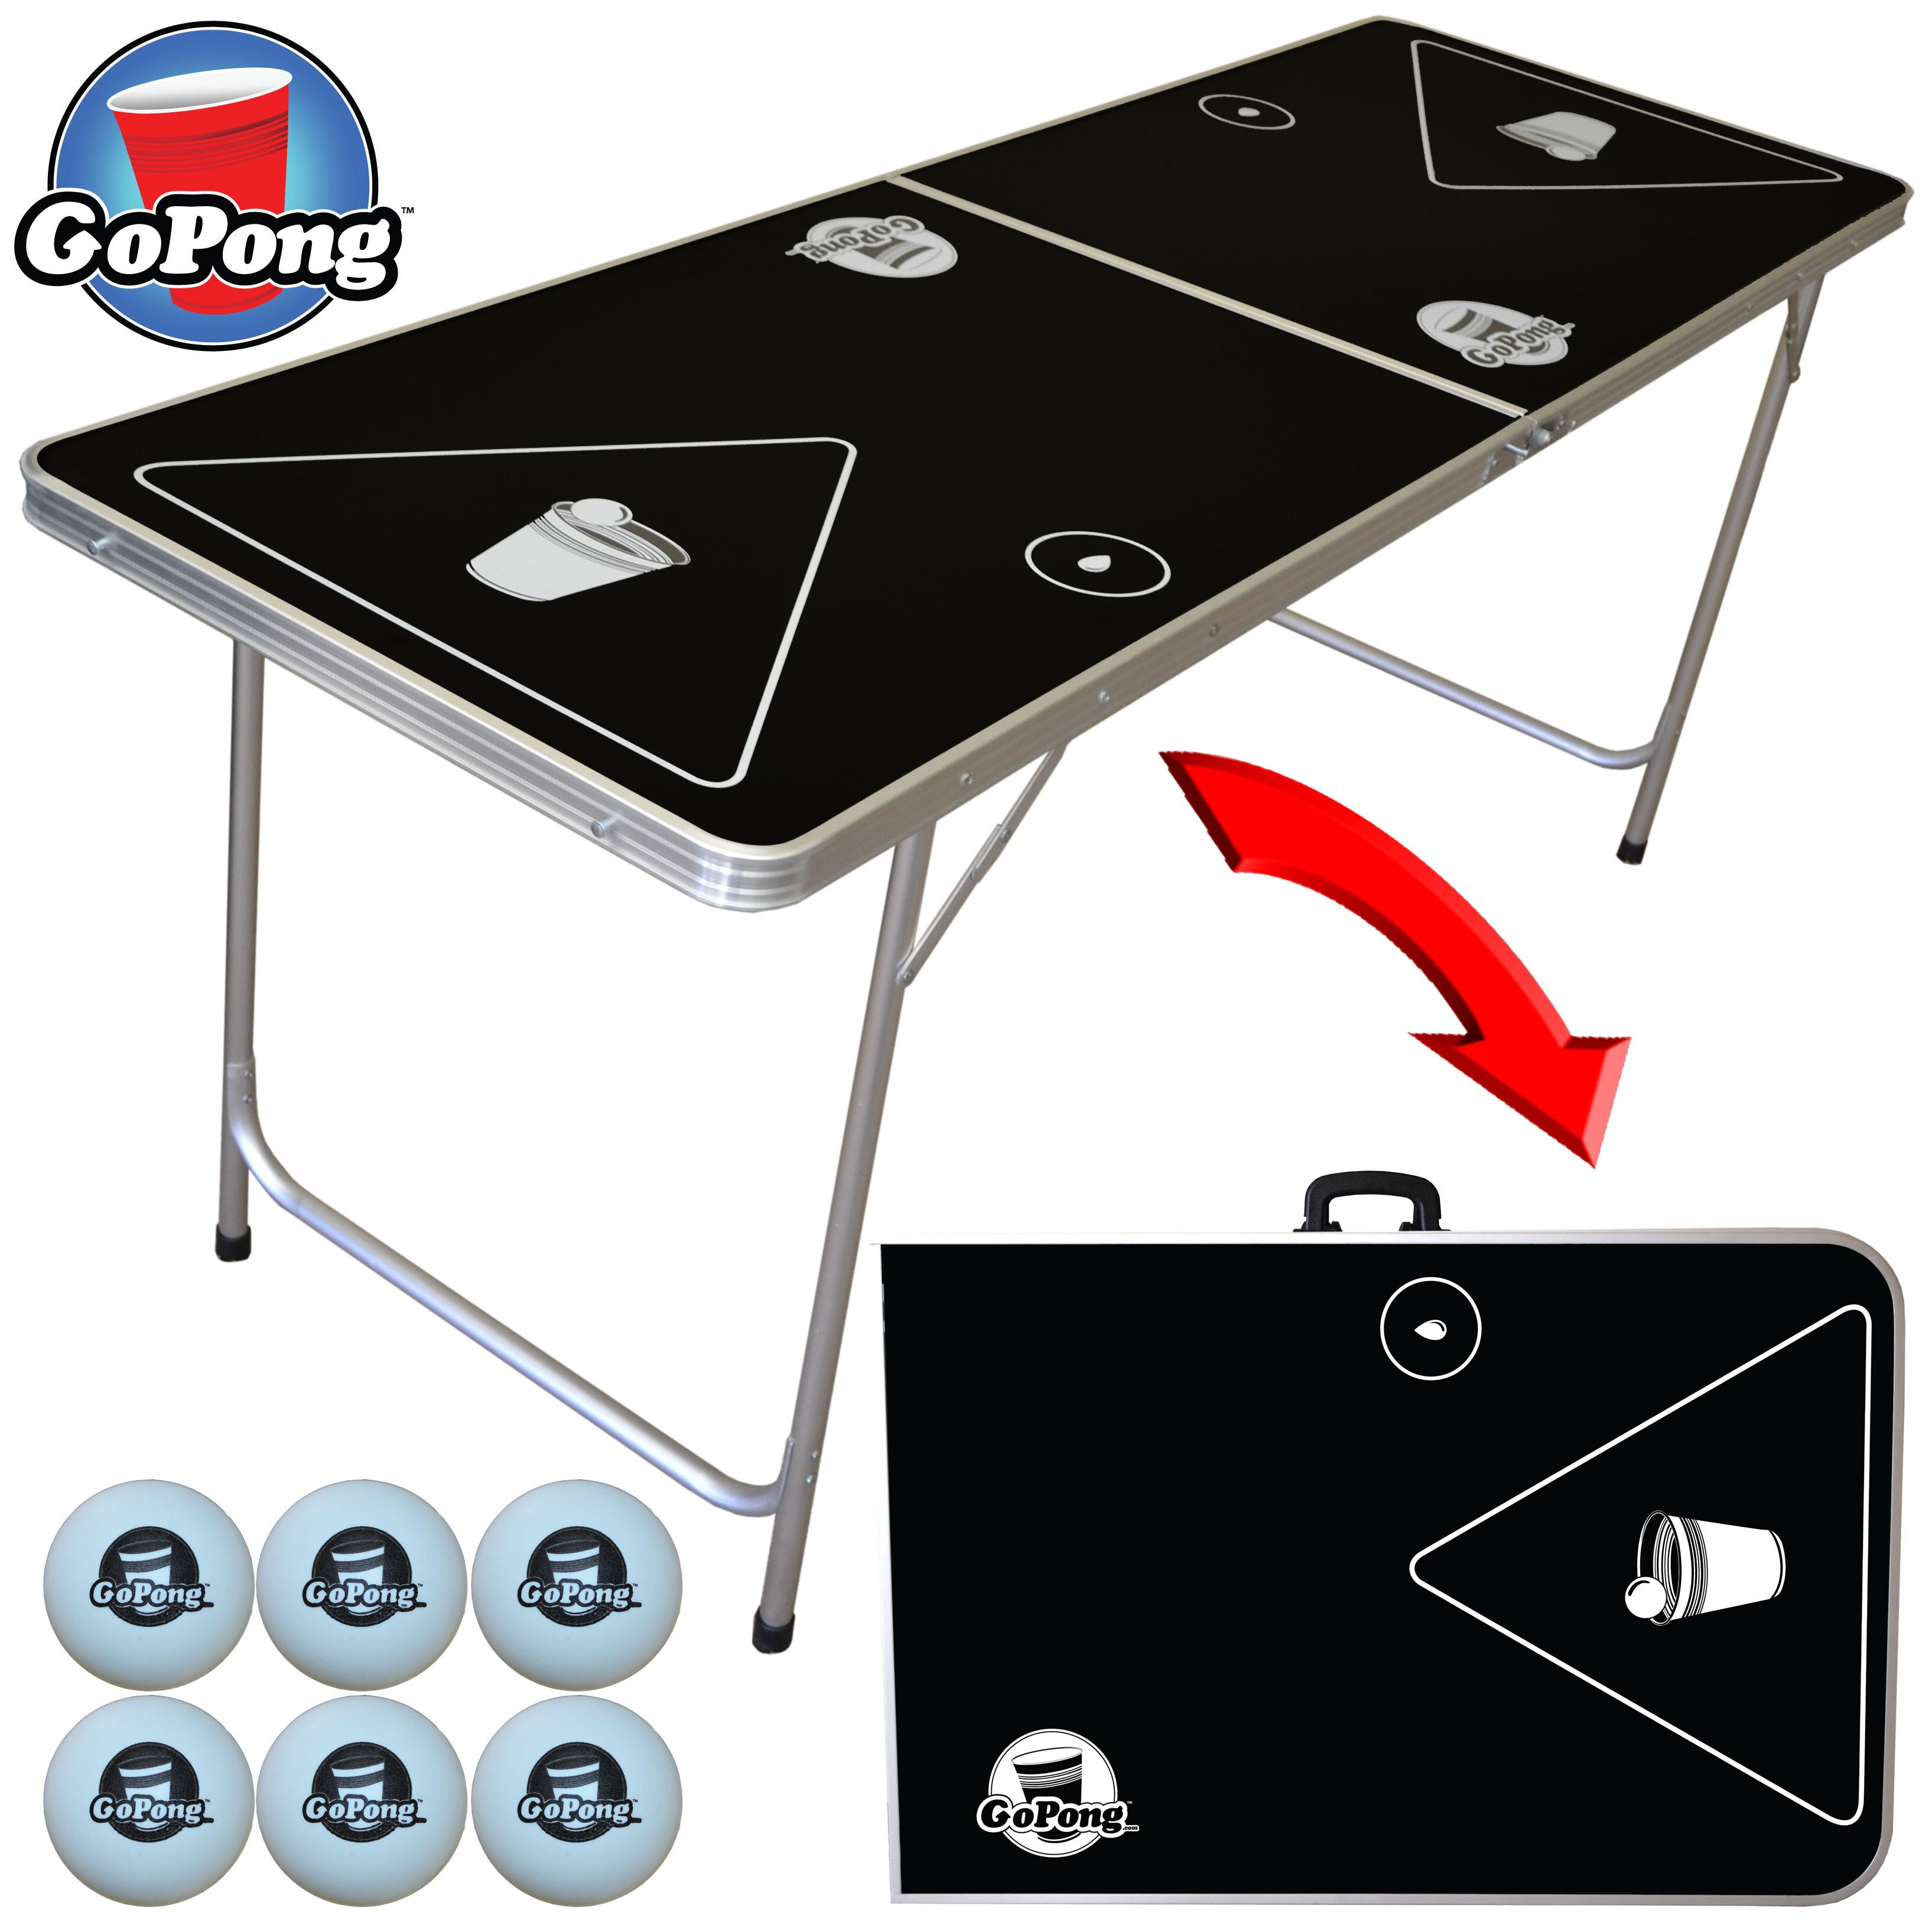 goPong cheap beer pong table under $100